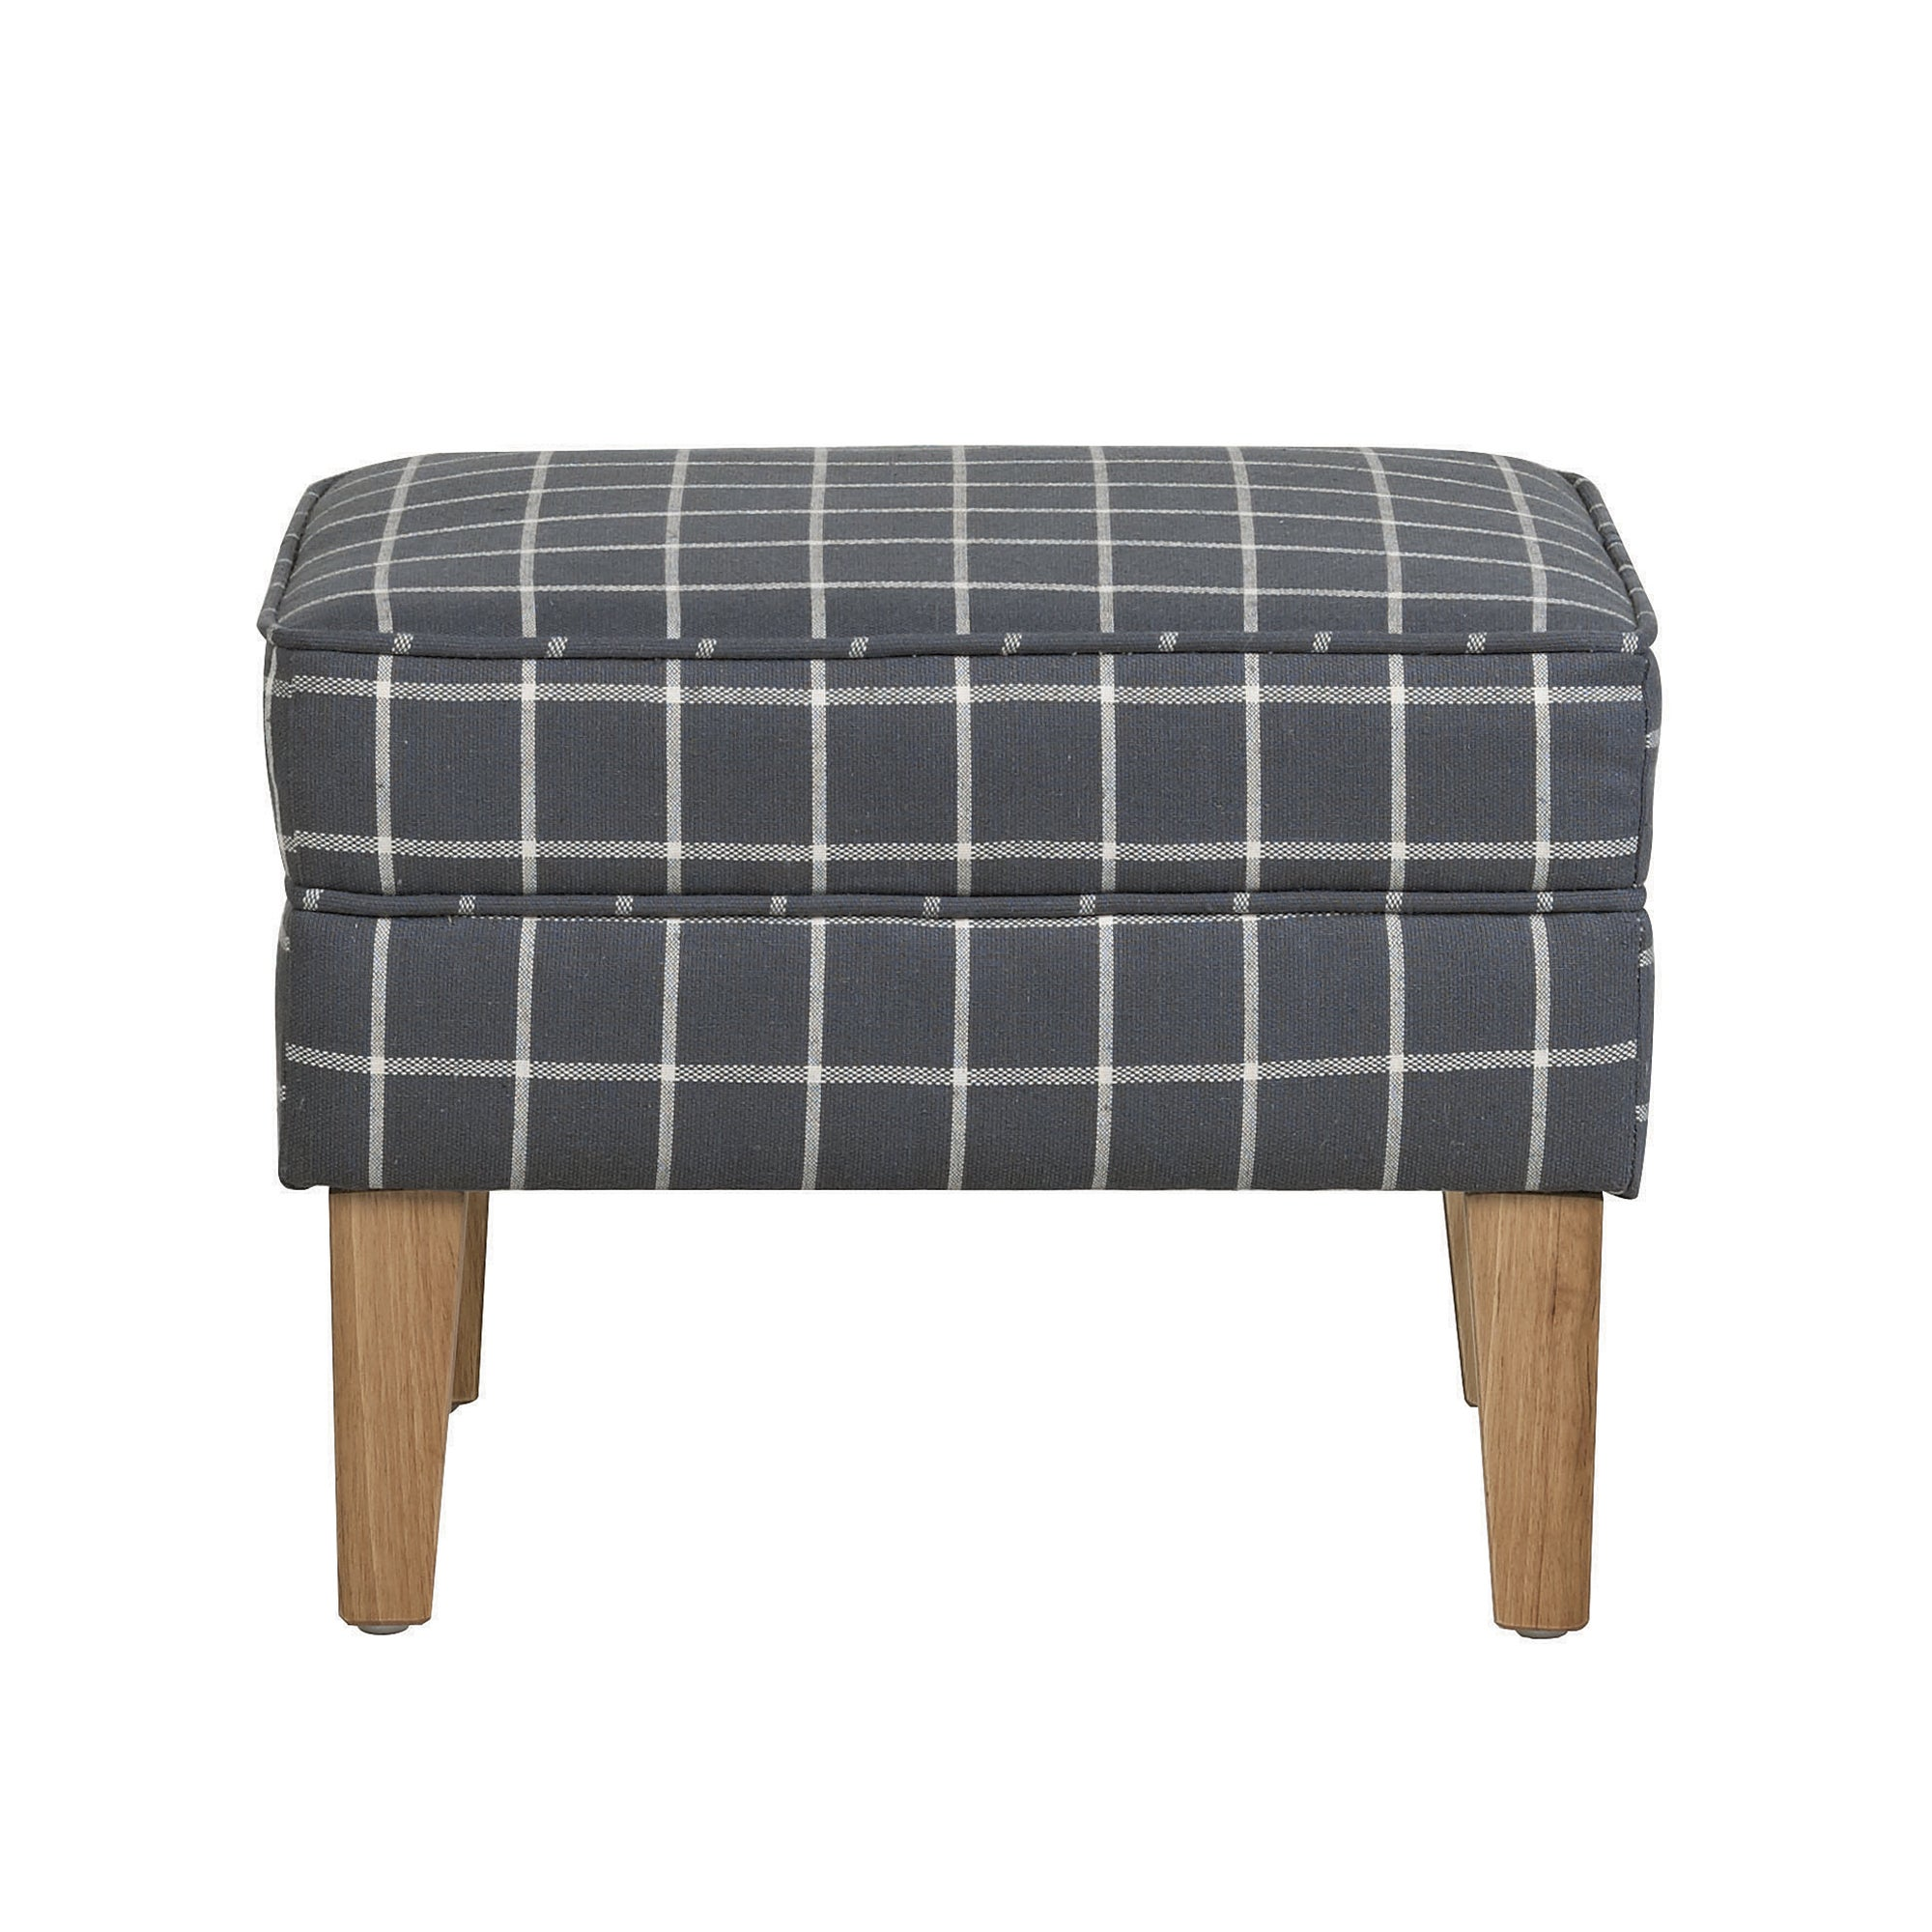 Charcoal Check Edinburgh Footstool